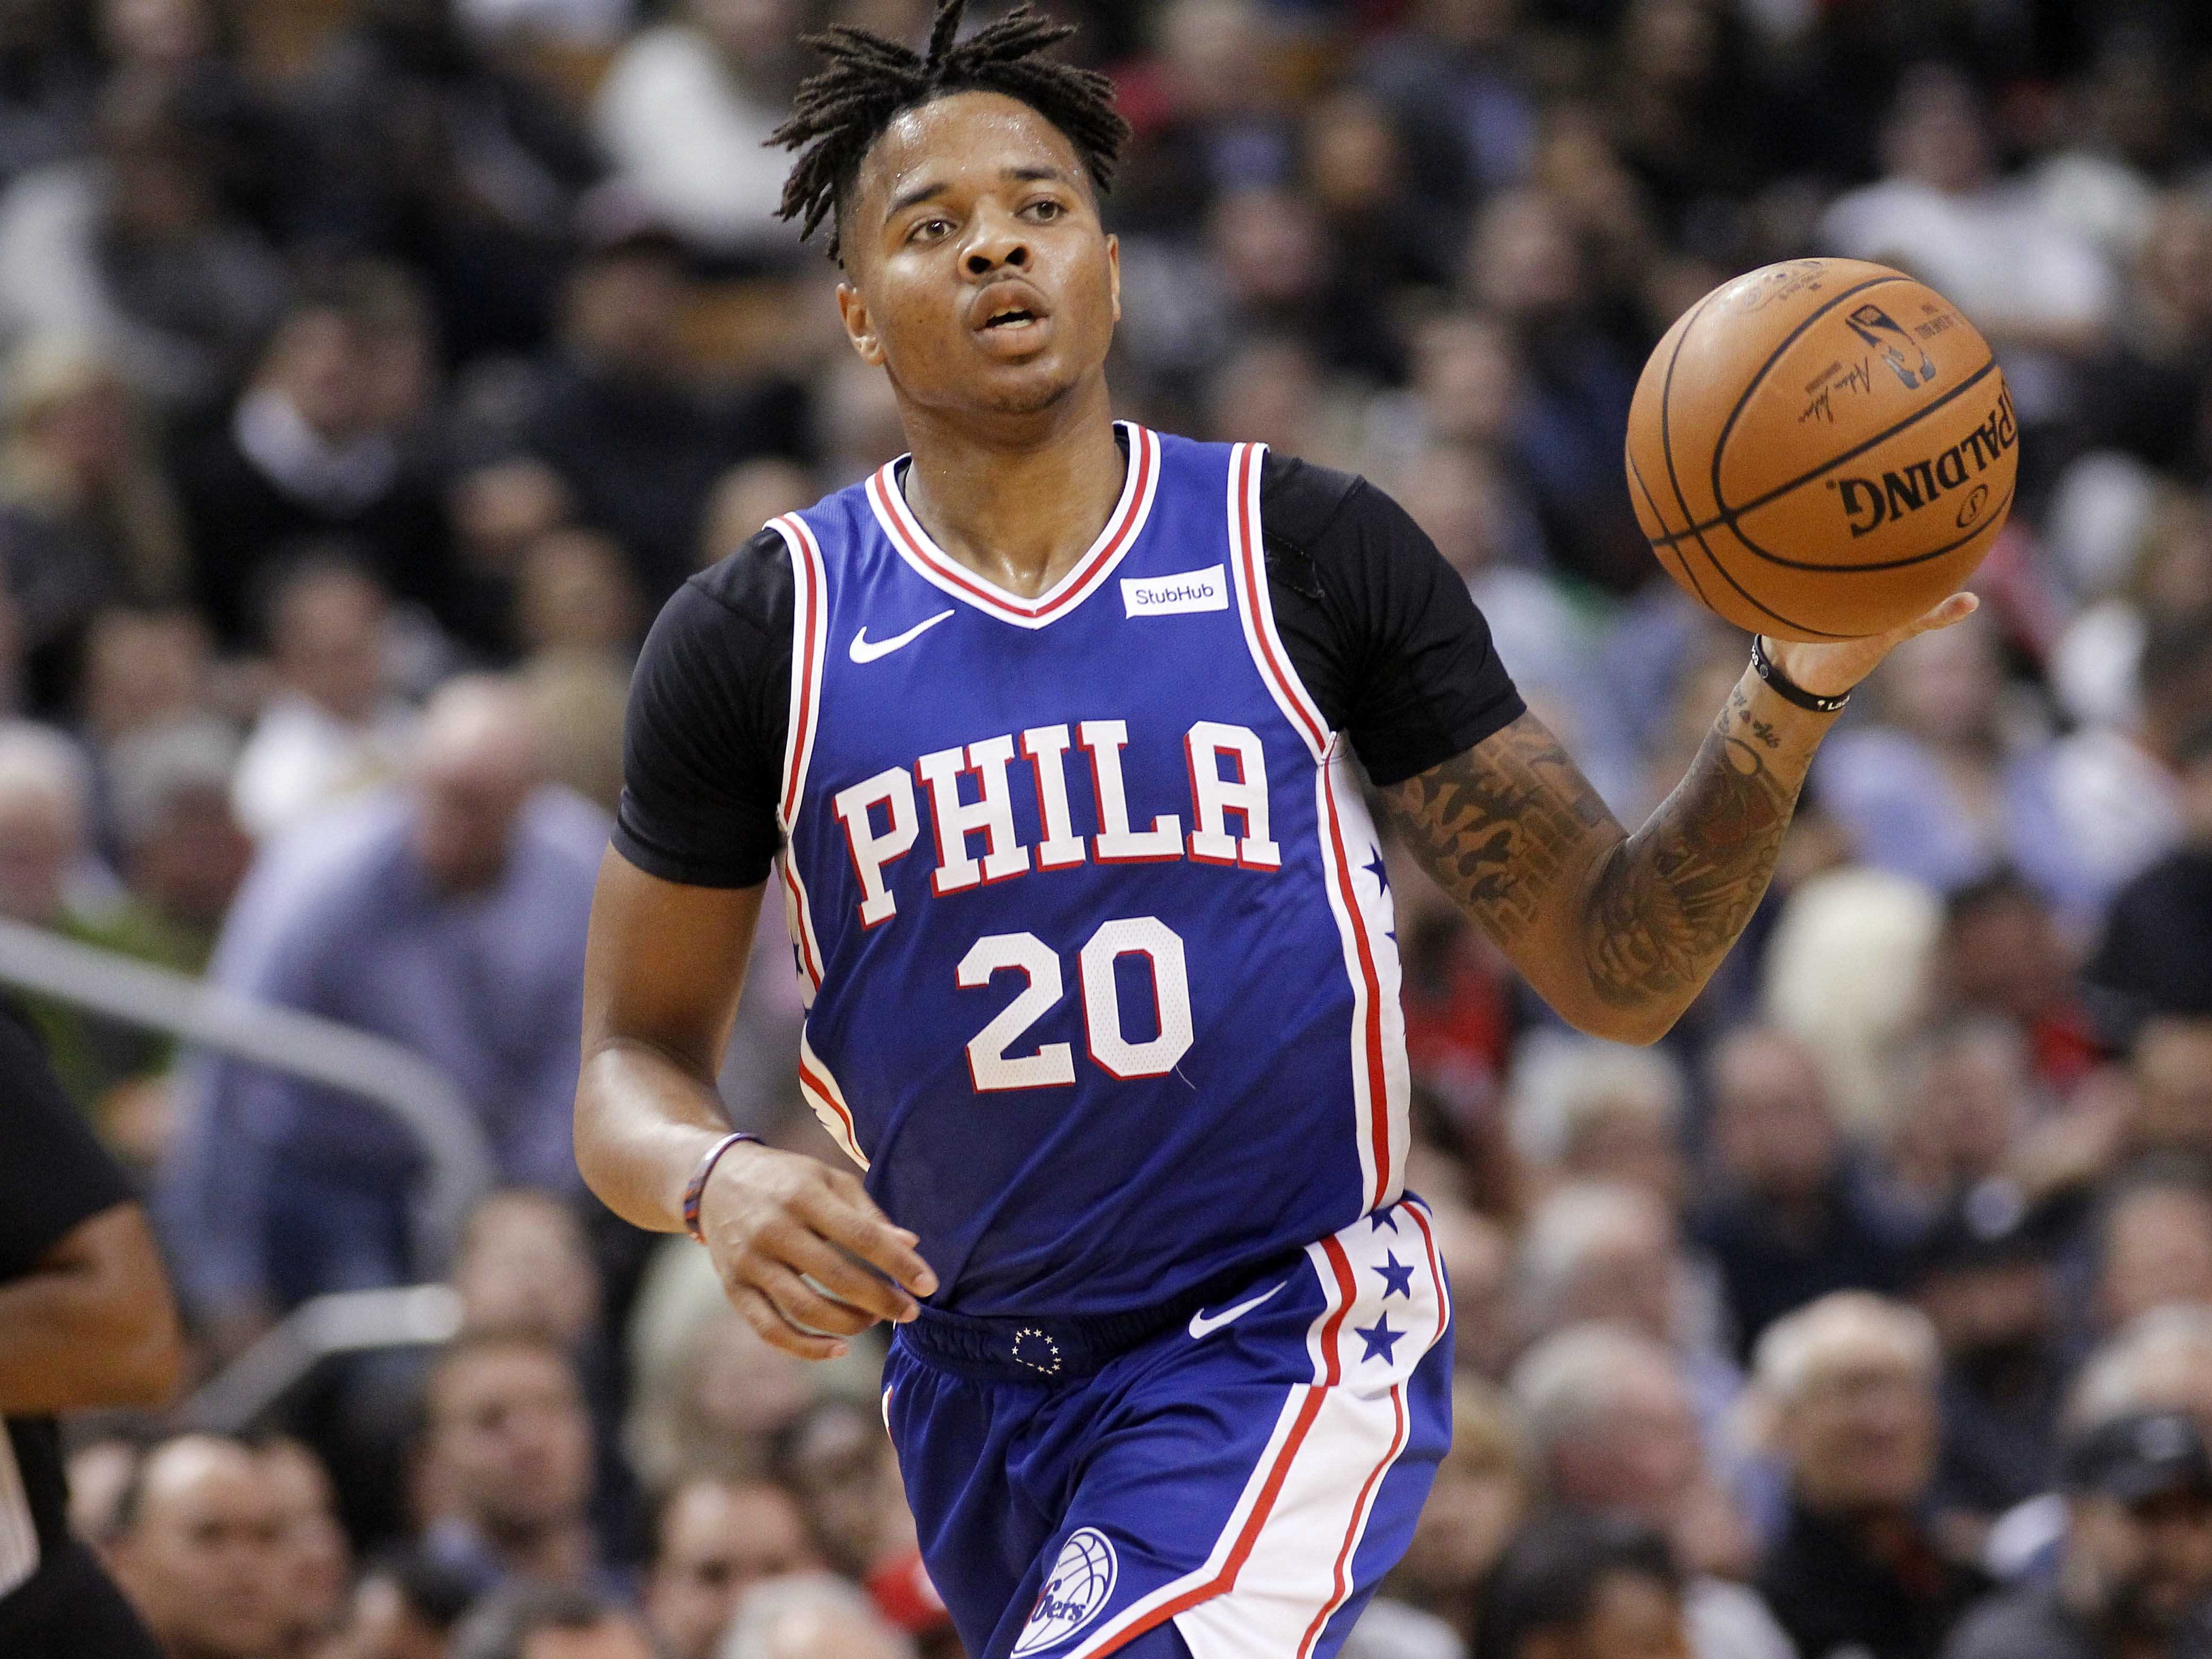 Markelle Fultz says goodbye to the Sixers